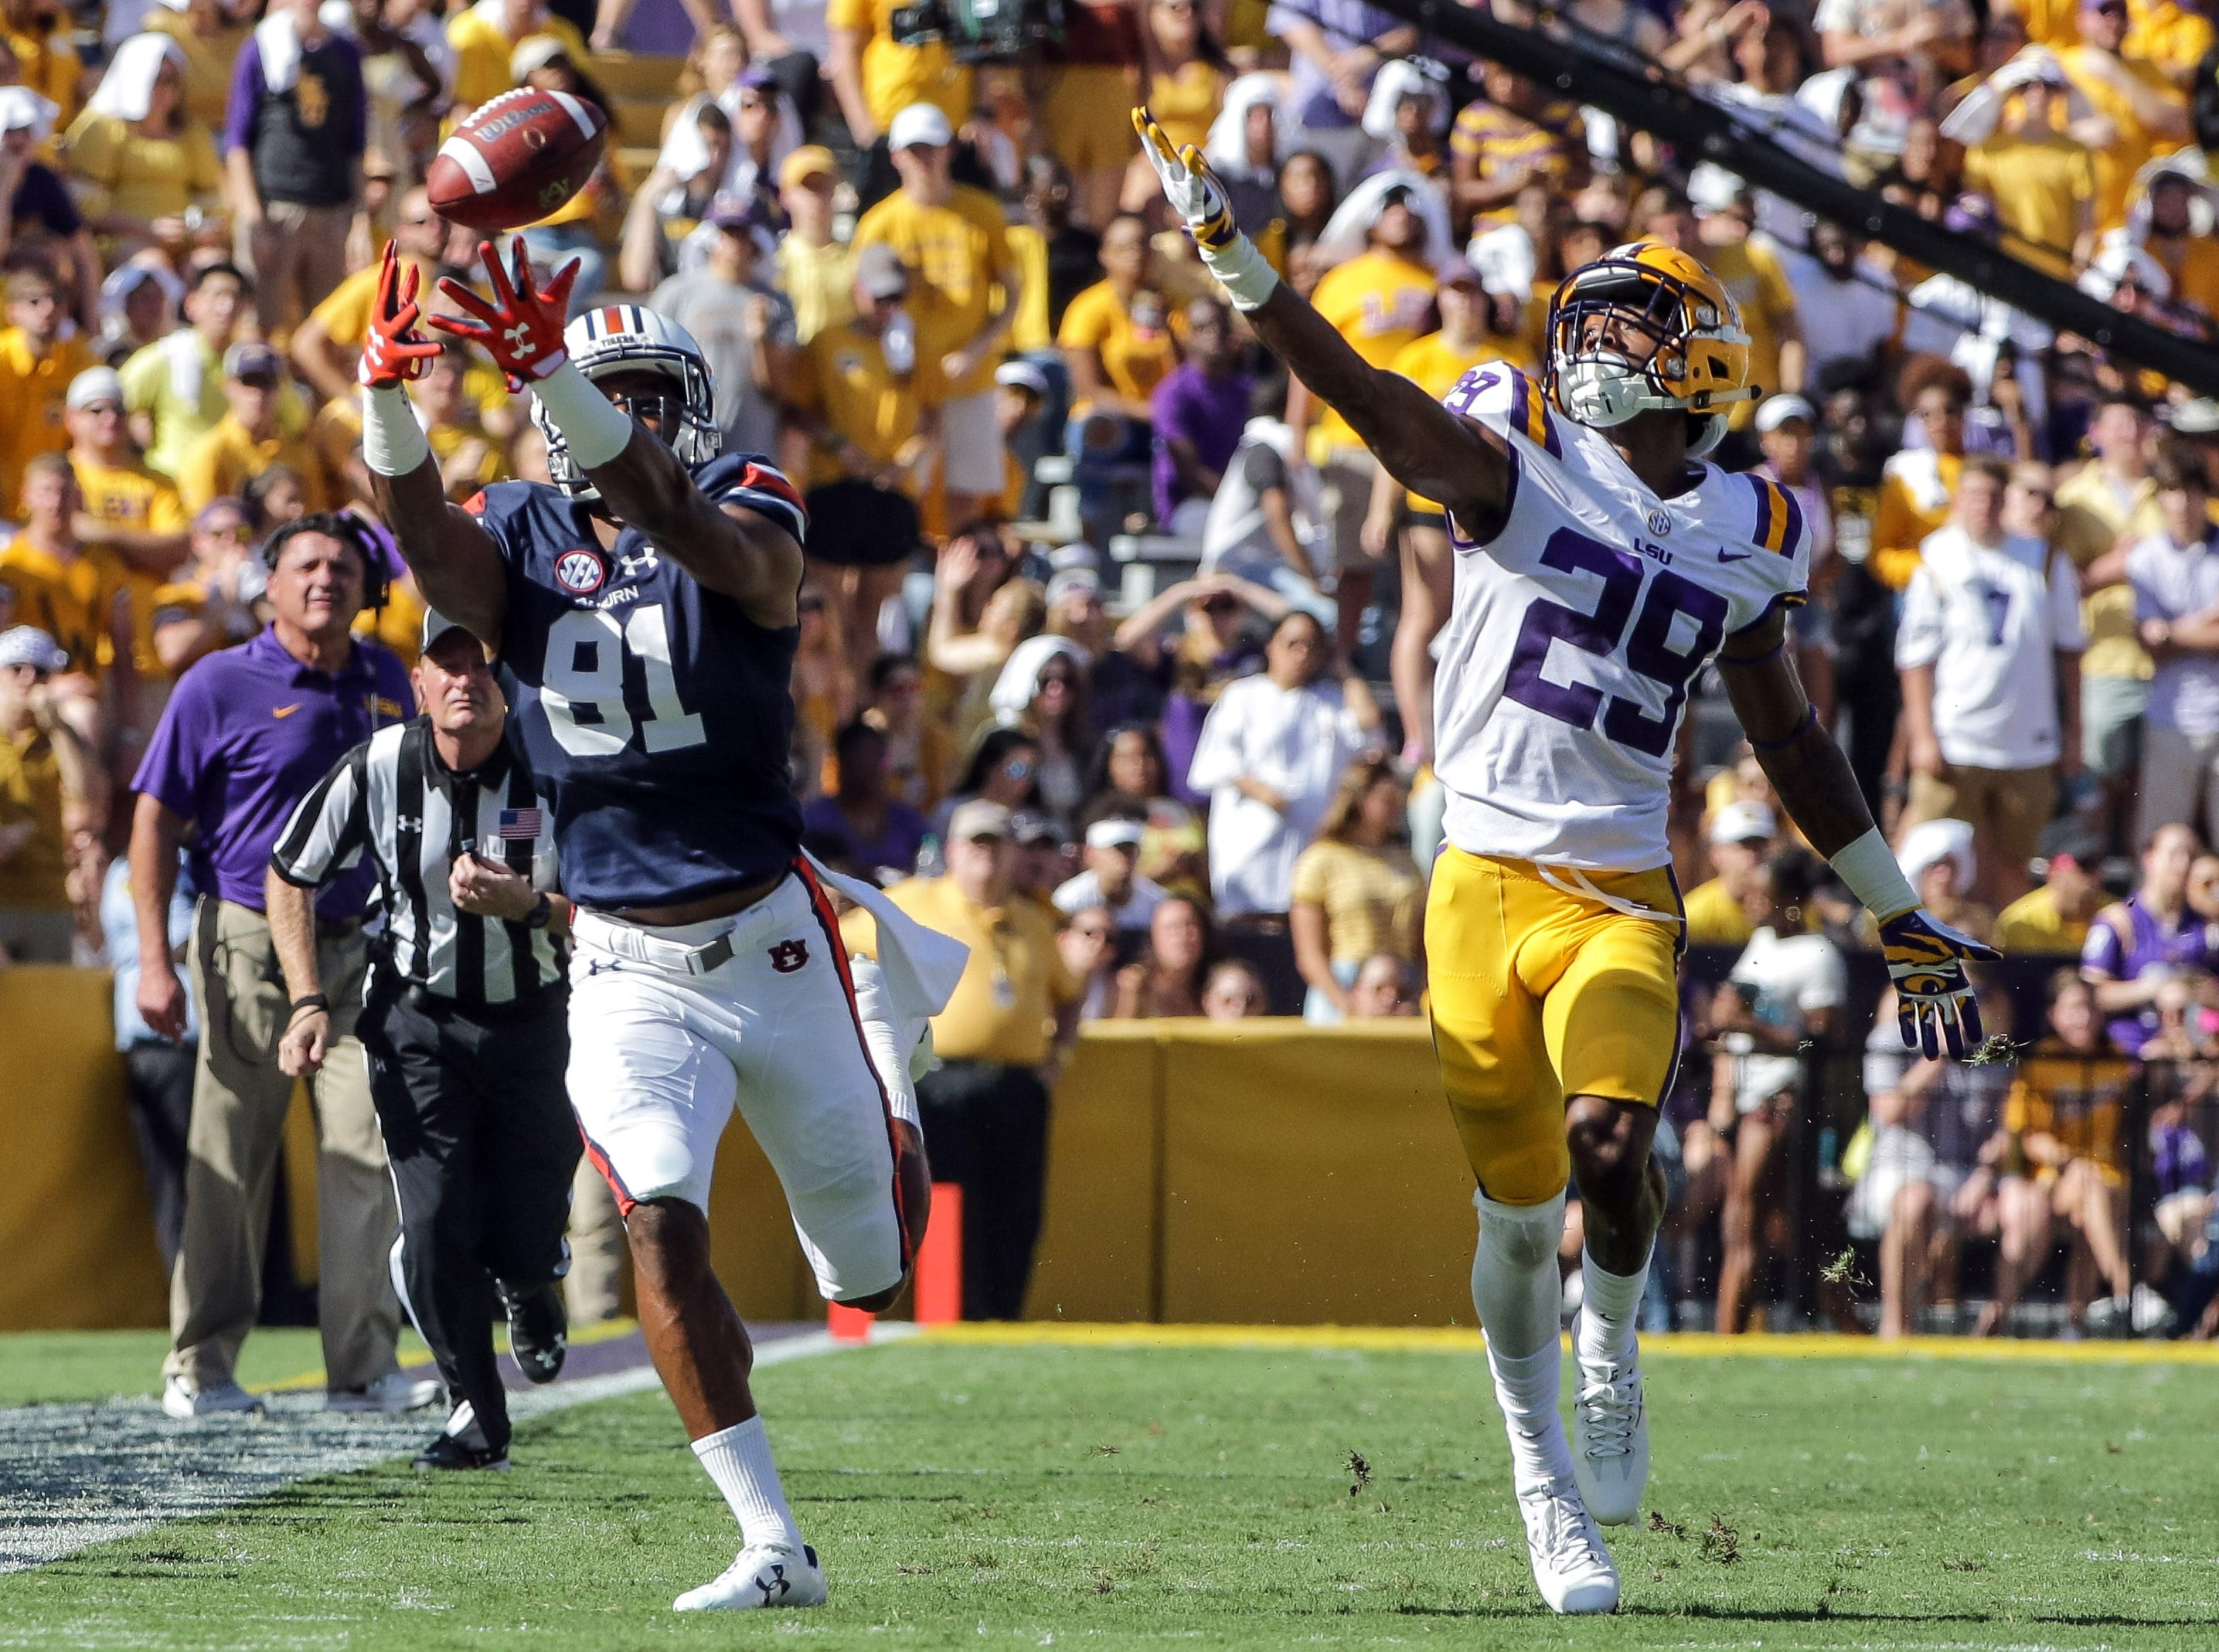 Oct 14, 2017; Baton Rouge, LA, USA; Auburn Tigers wide receiver Darius Slayton (81) catches a pass over LSU Tigers cornerback Andraez Williams (29) during the first half of a game at Tiger Stadium. Mandatory Credit: Derick E. Hingle-USA TODAY Sports